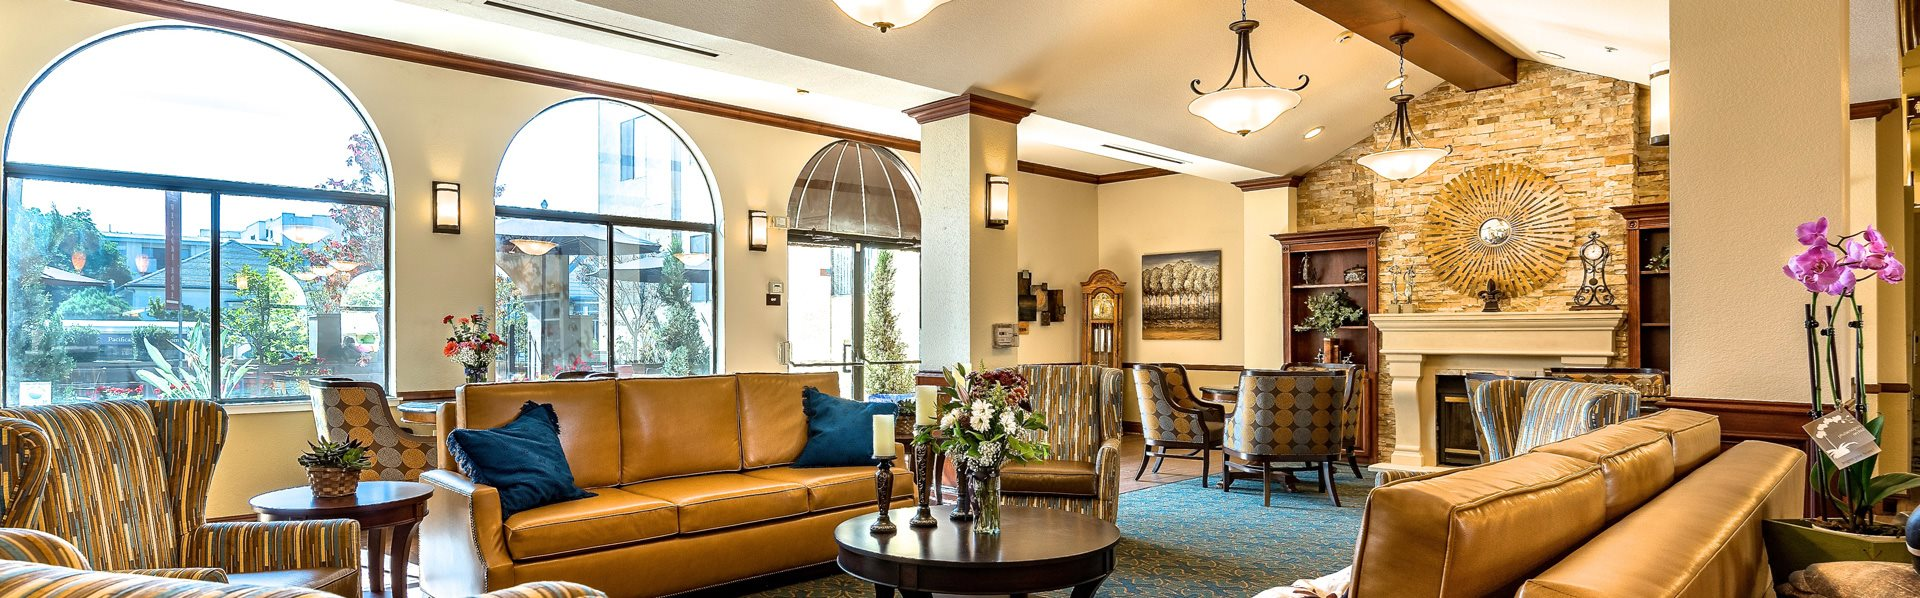 Open and Comfortable Living Room at Pacifica Senior Living San Leandro, San Leandro, CA, 94577